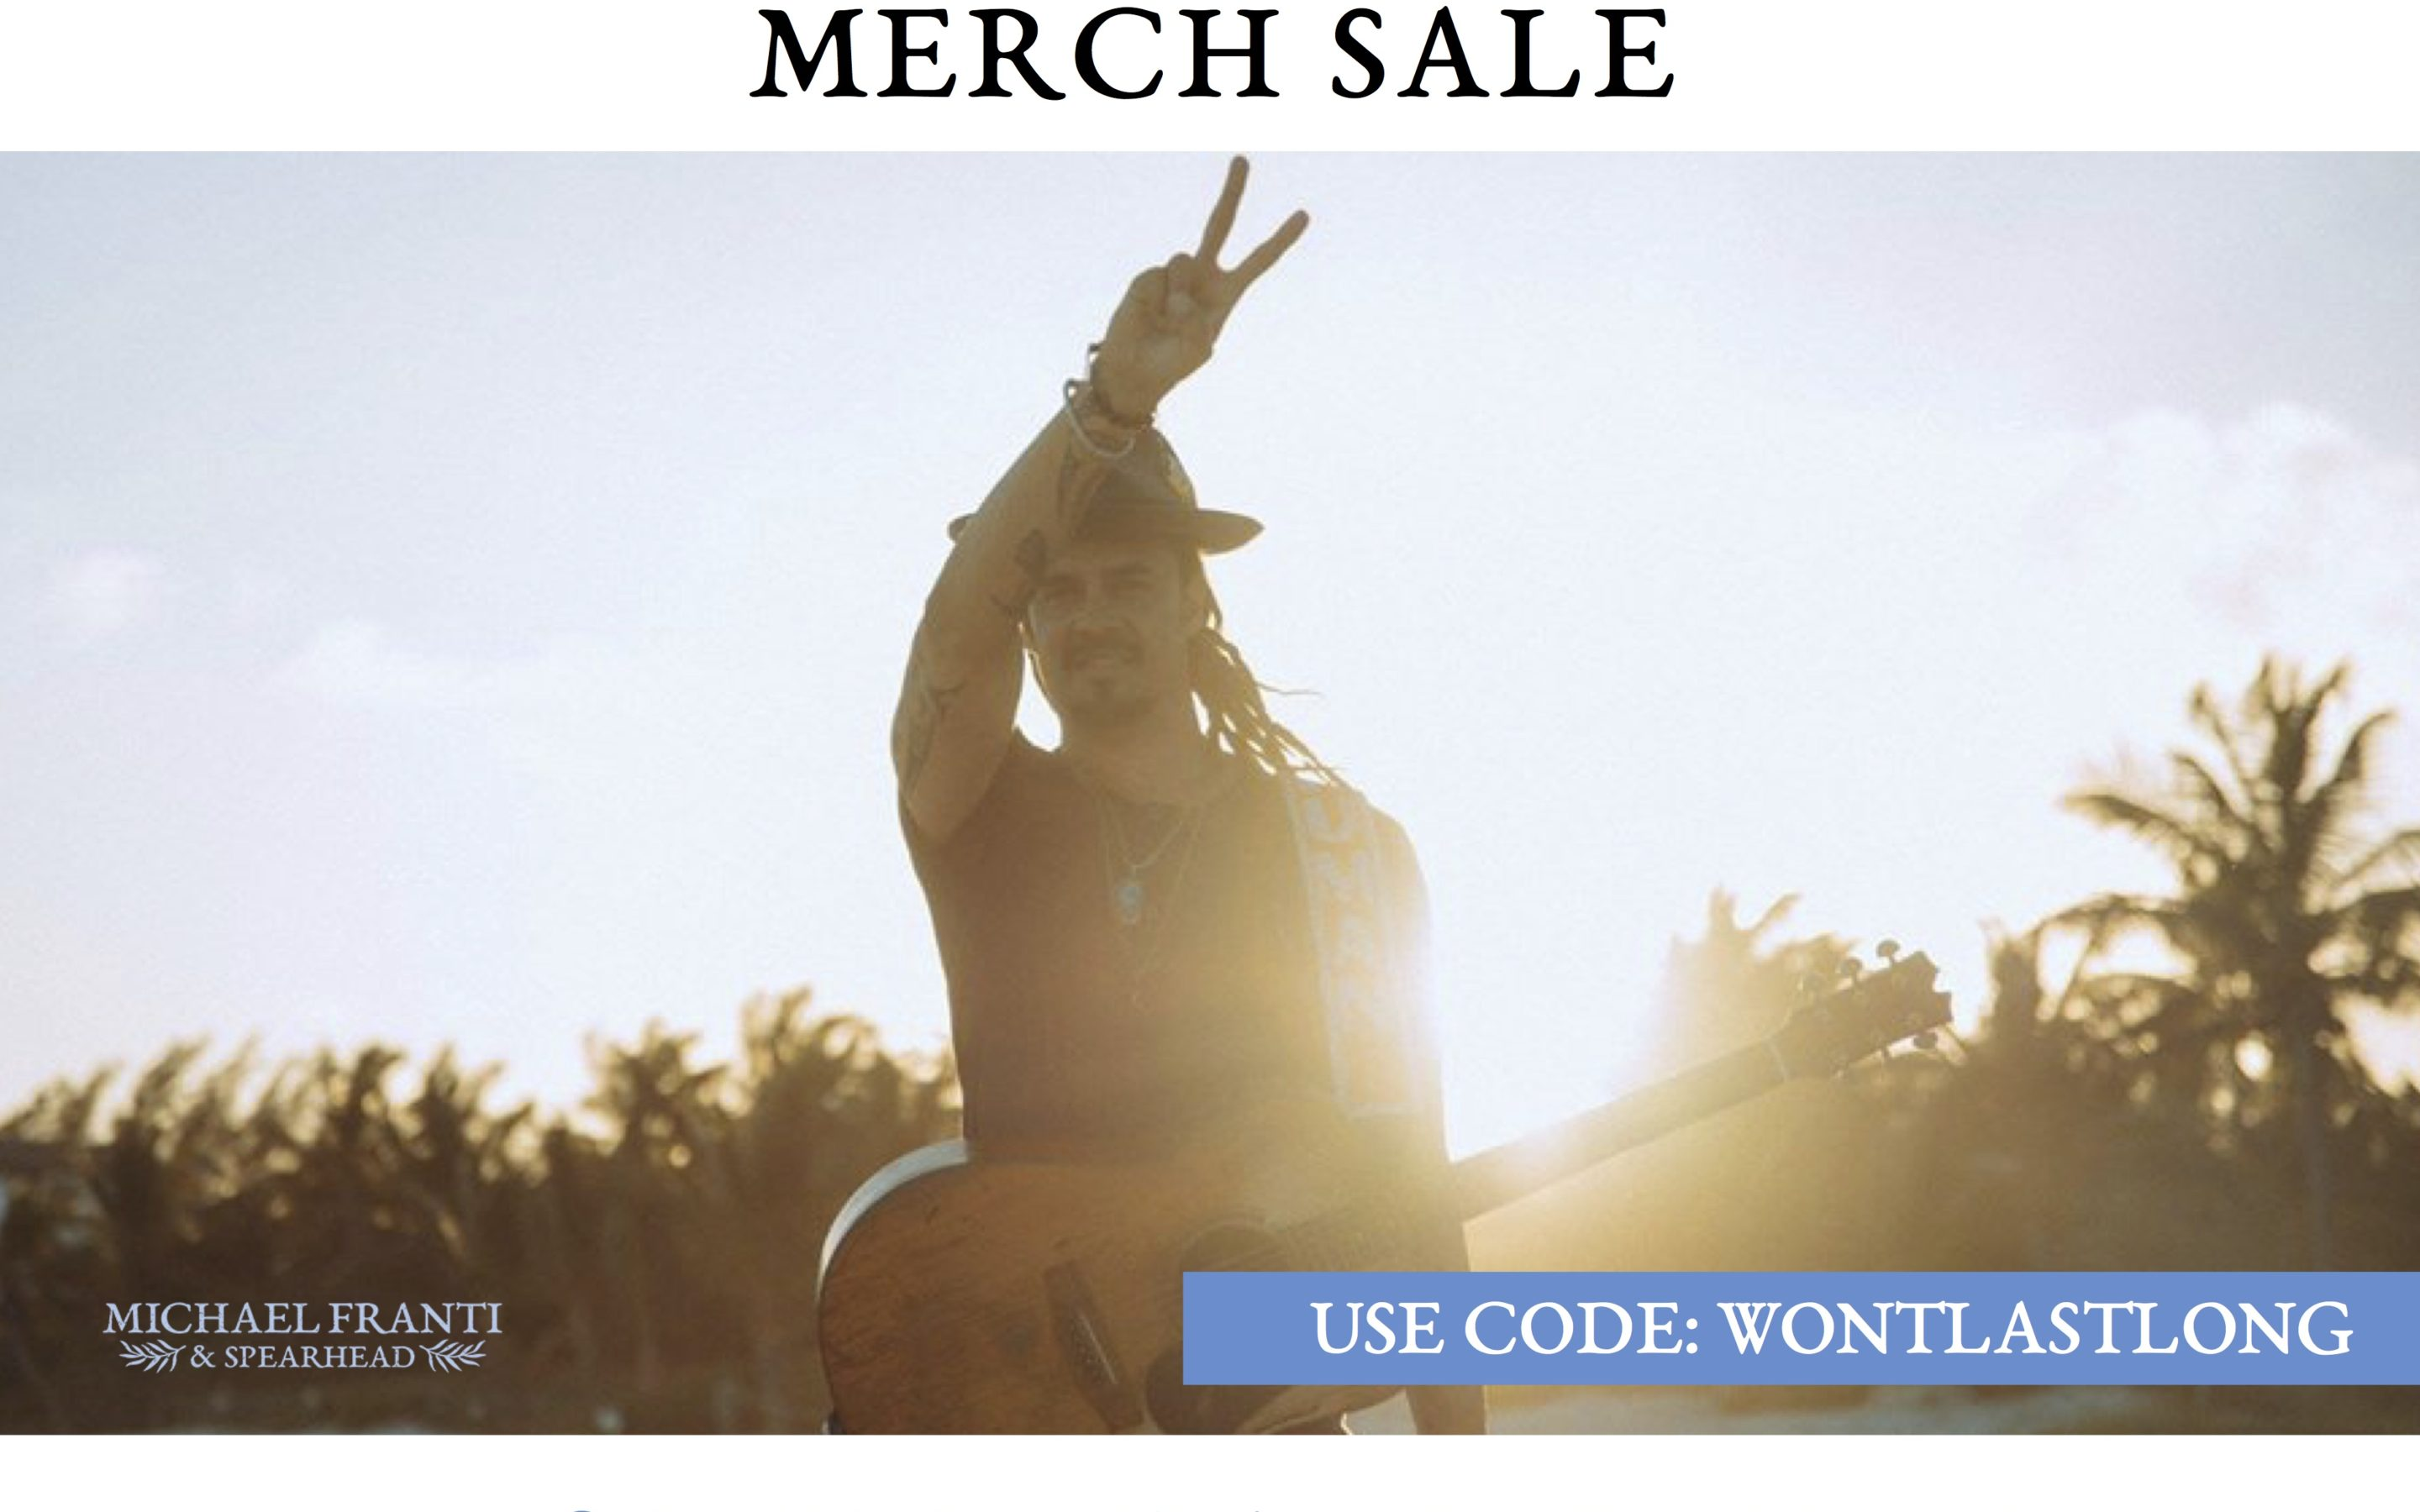 Summertime Ain't Gone Merch Sale